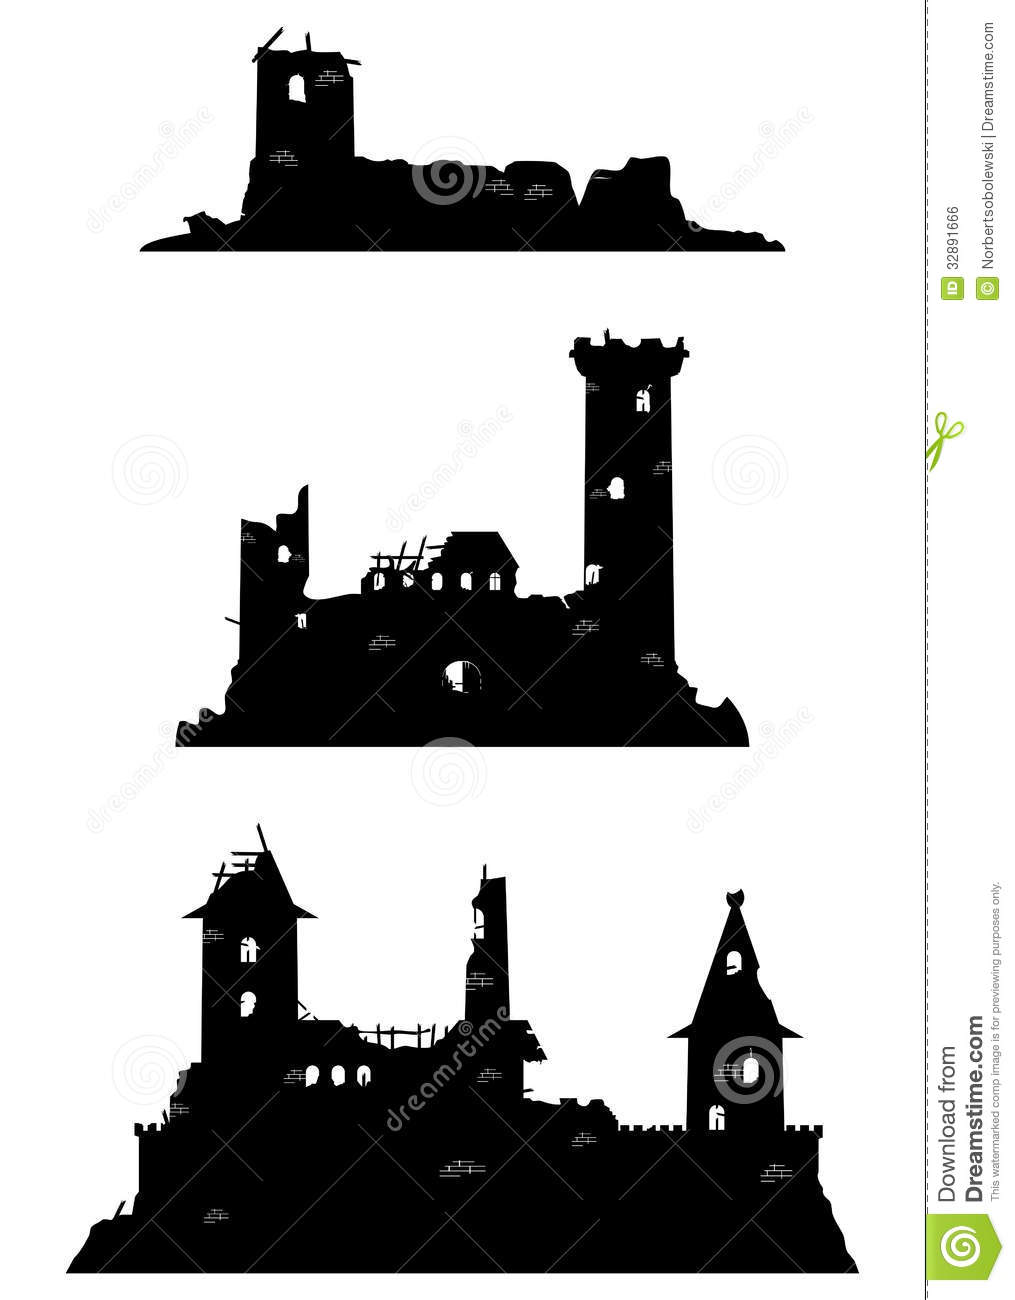 Castle Ruins Royalty Free Stock Image.